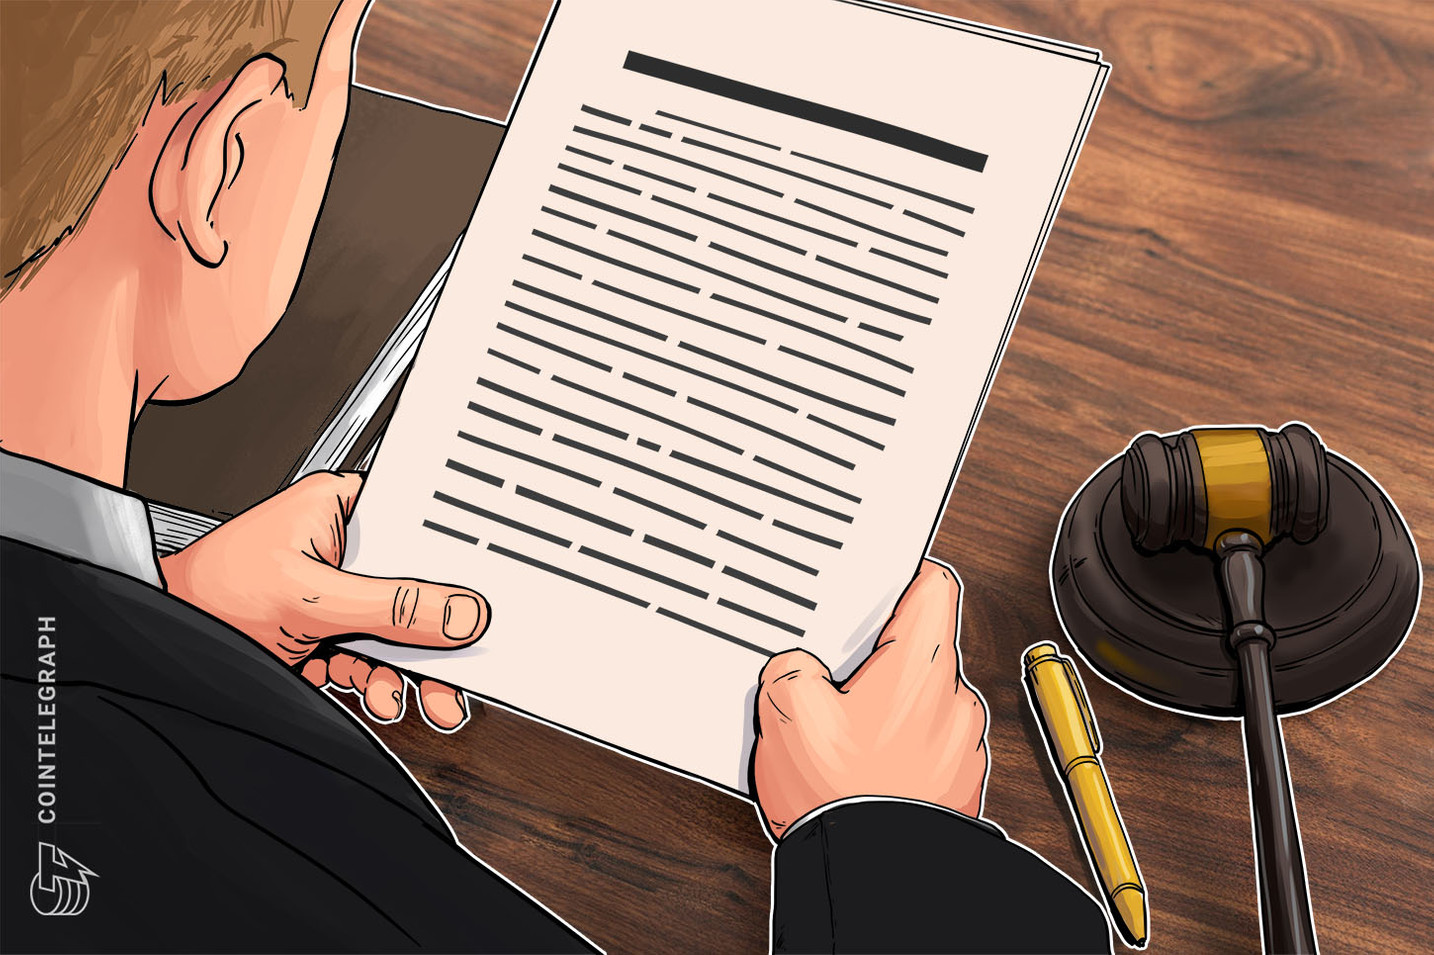 Fundador de criptobolsa de Bitcoin Mt. Gox, Mark Karpeles, disputa demanda hecha en Illinois